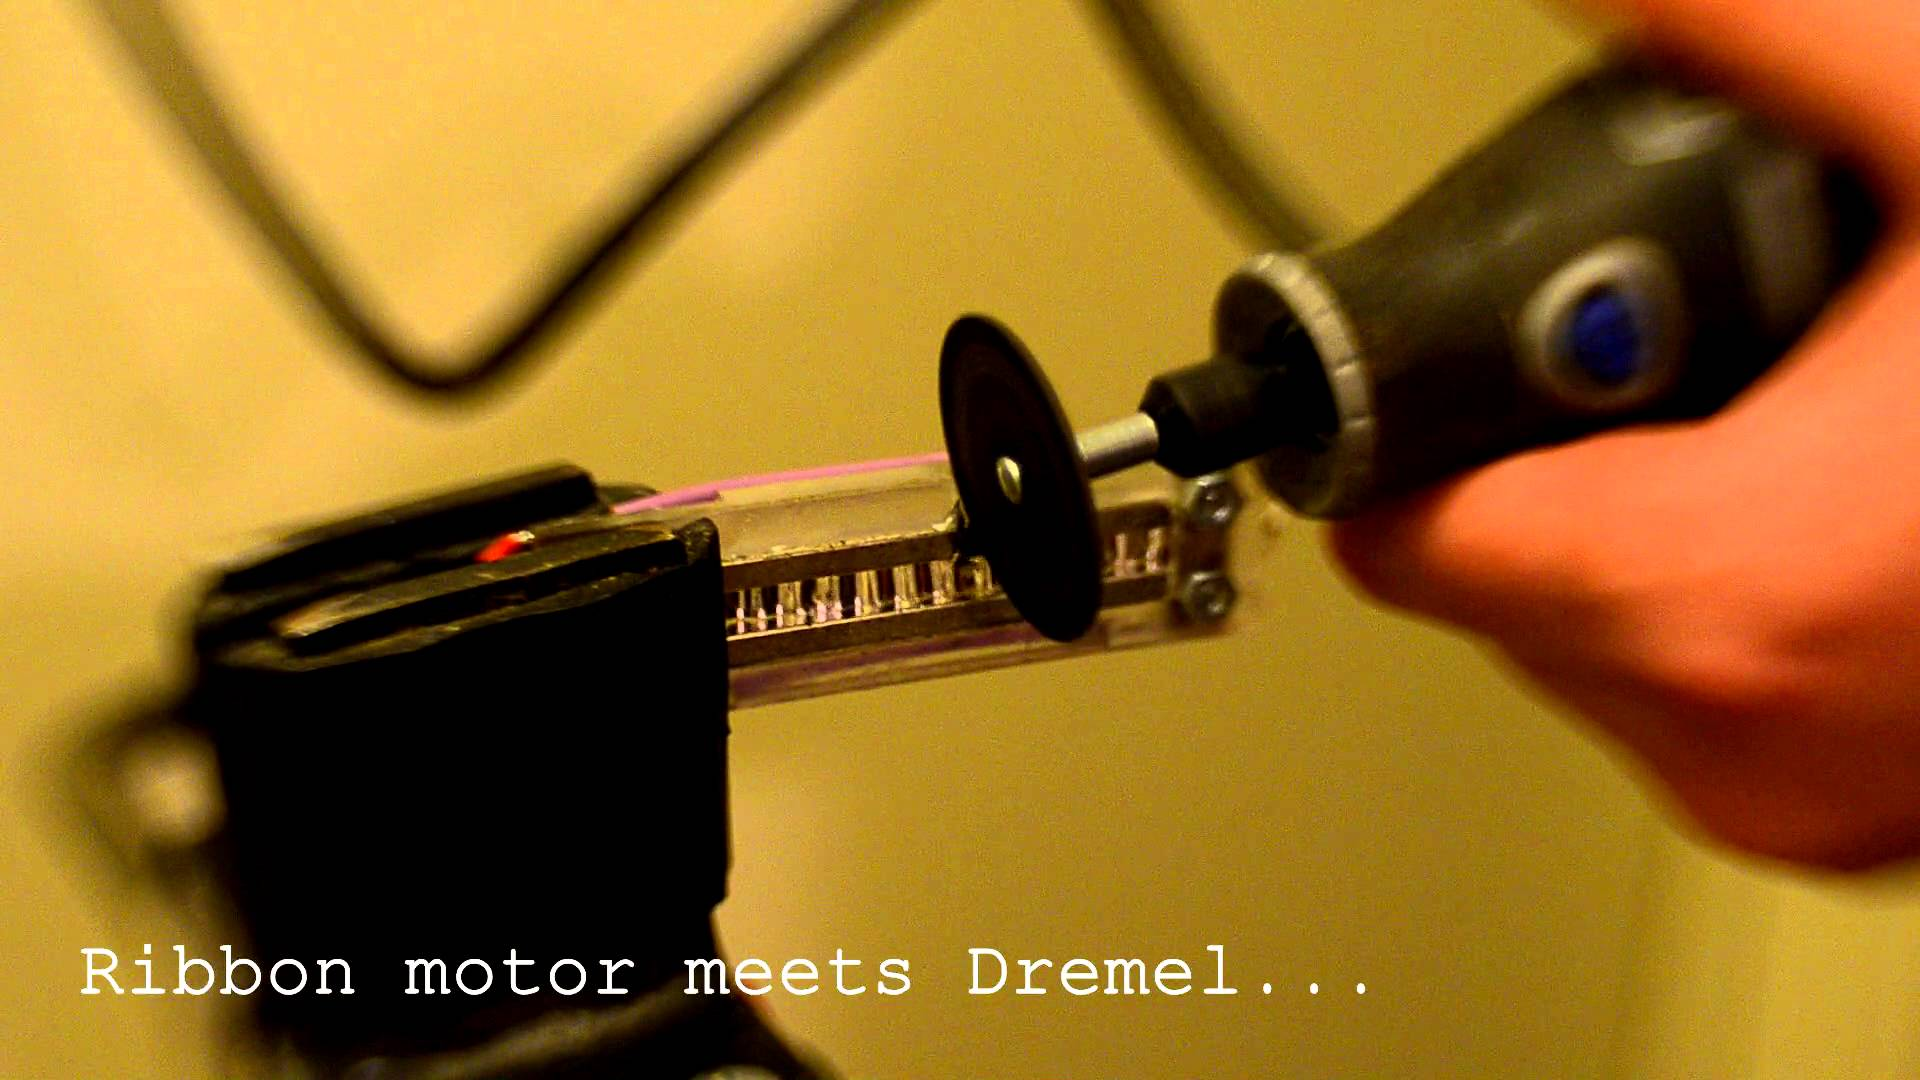 Ribbon motor meets Dremel